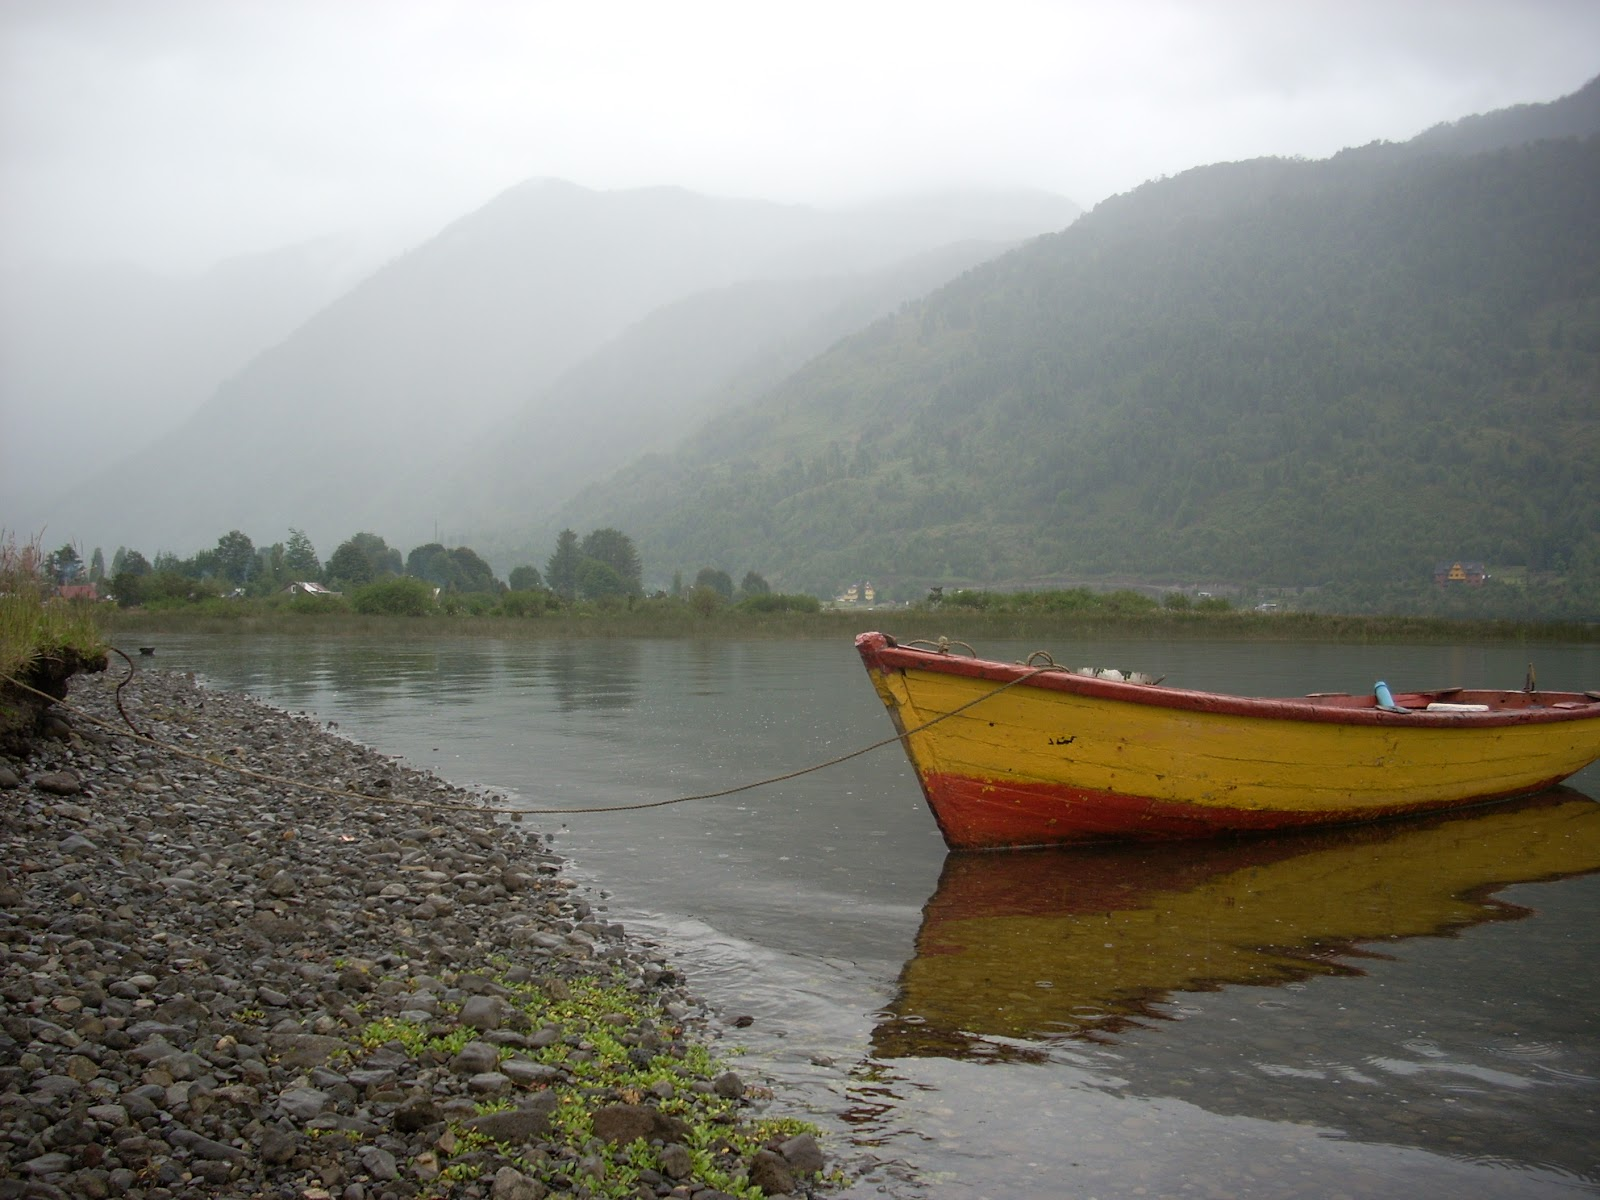 Puyuhuapi. The mist/rain is typical